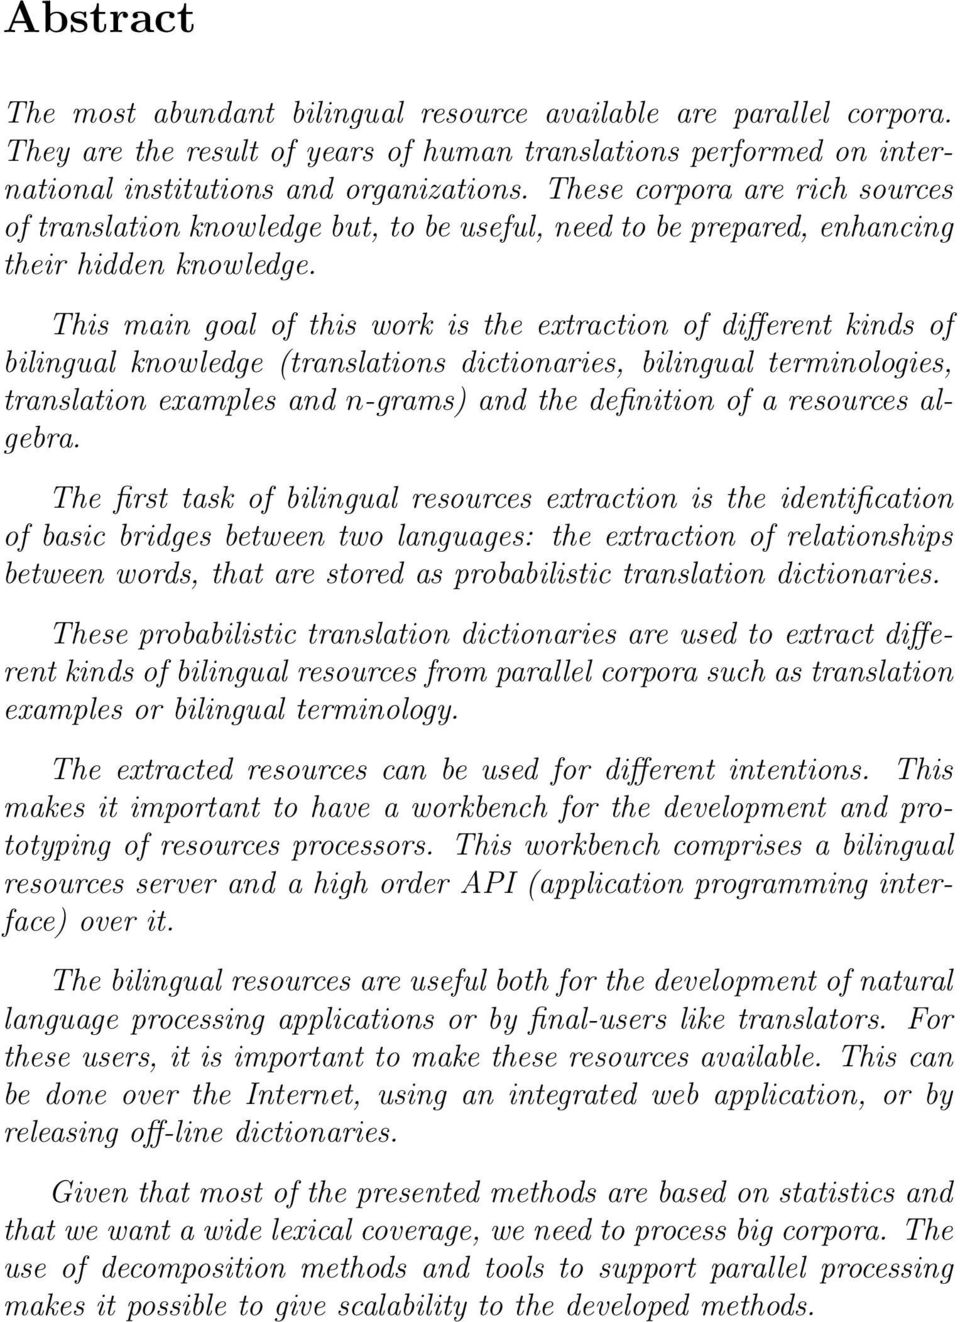 This main goal of this work is the extraction of different kinds of bilingual knowledge (translations dictionaries, bilingual terminologies, translation examples and n-grams) and the definition of a